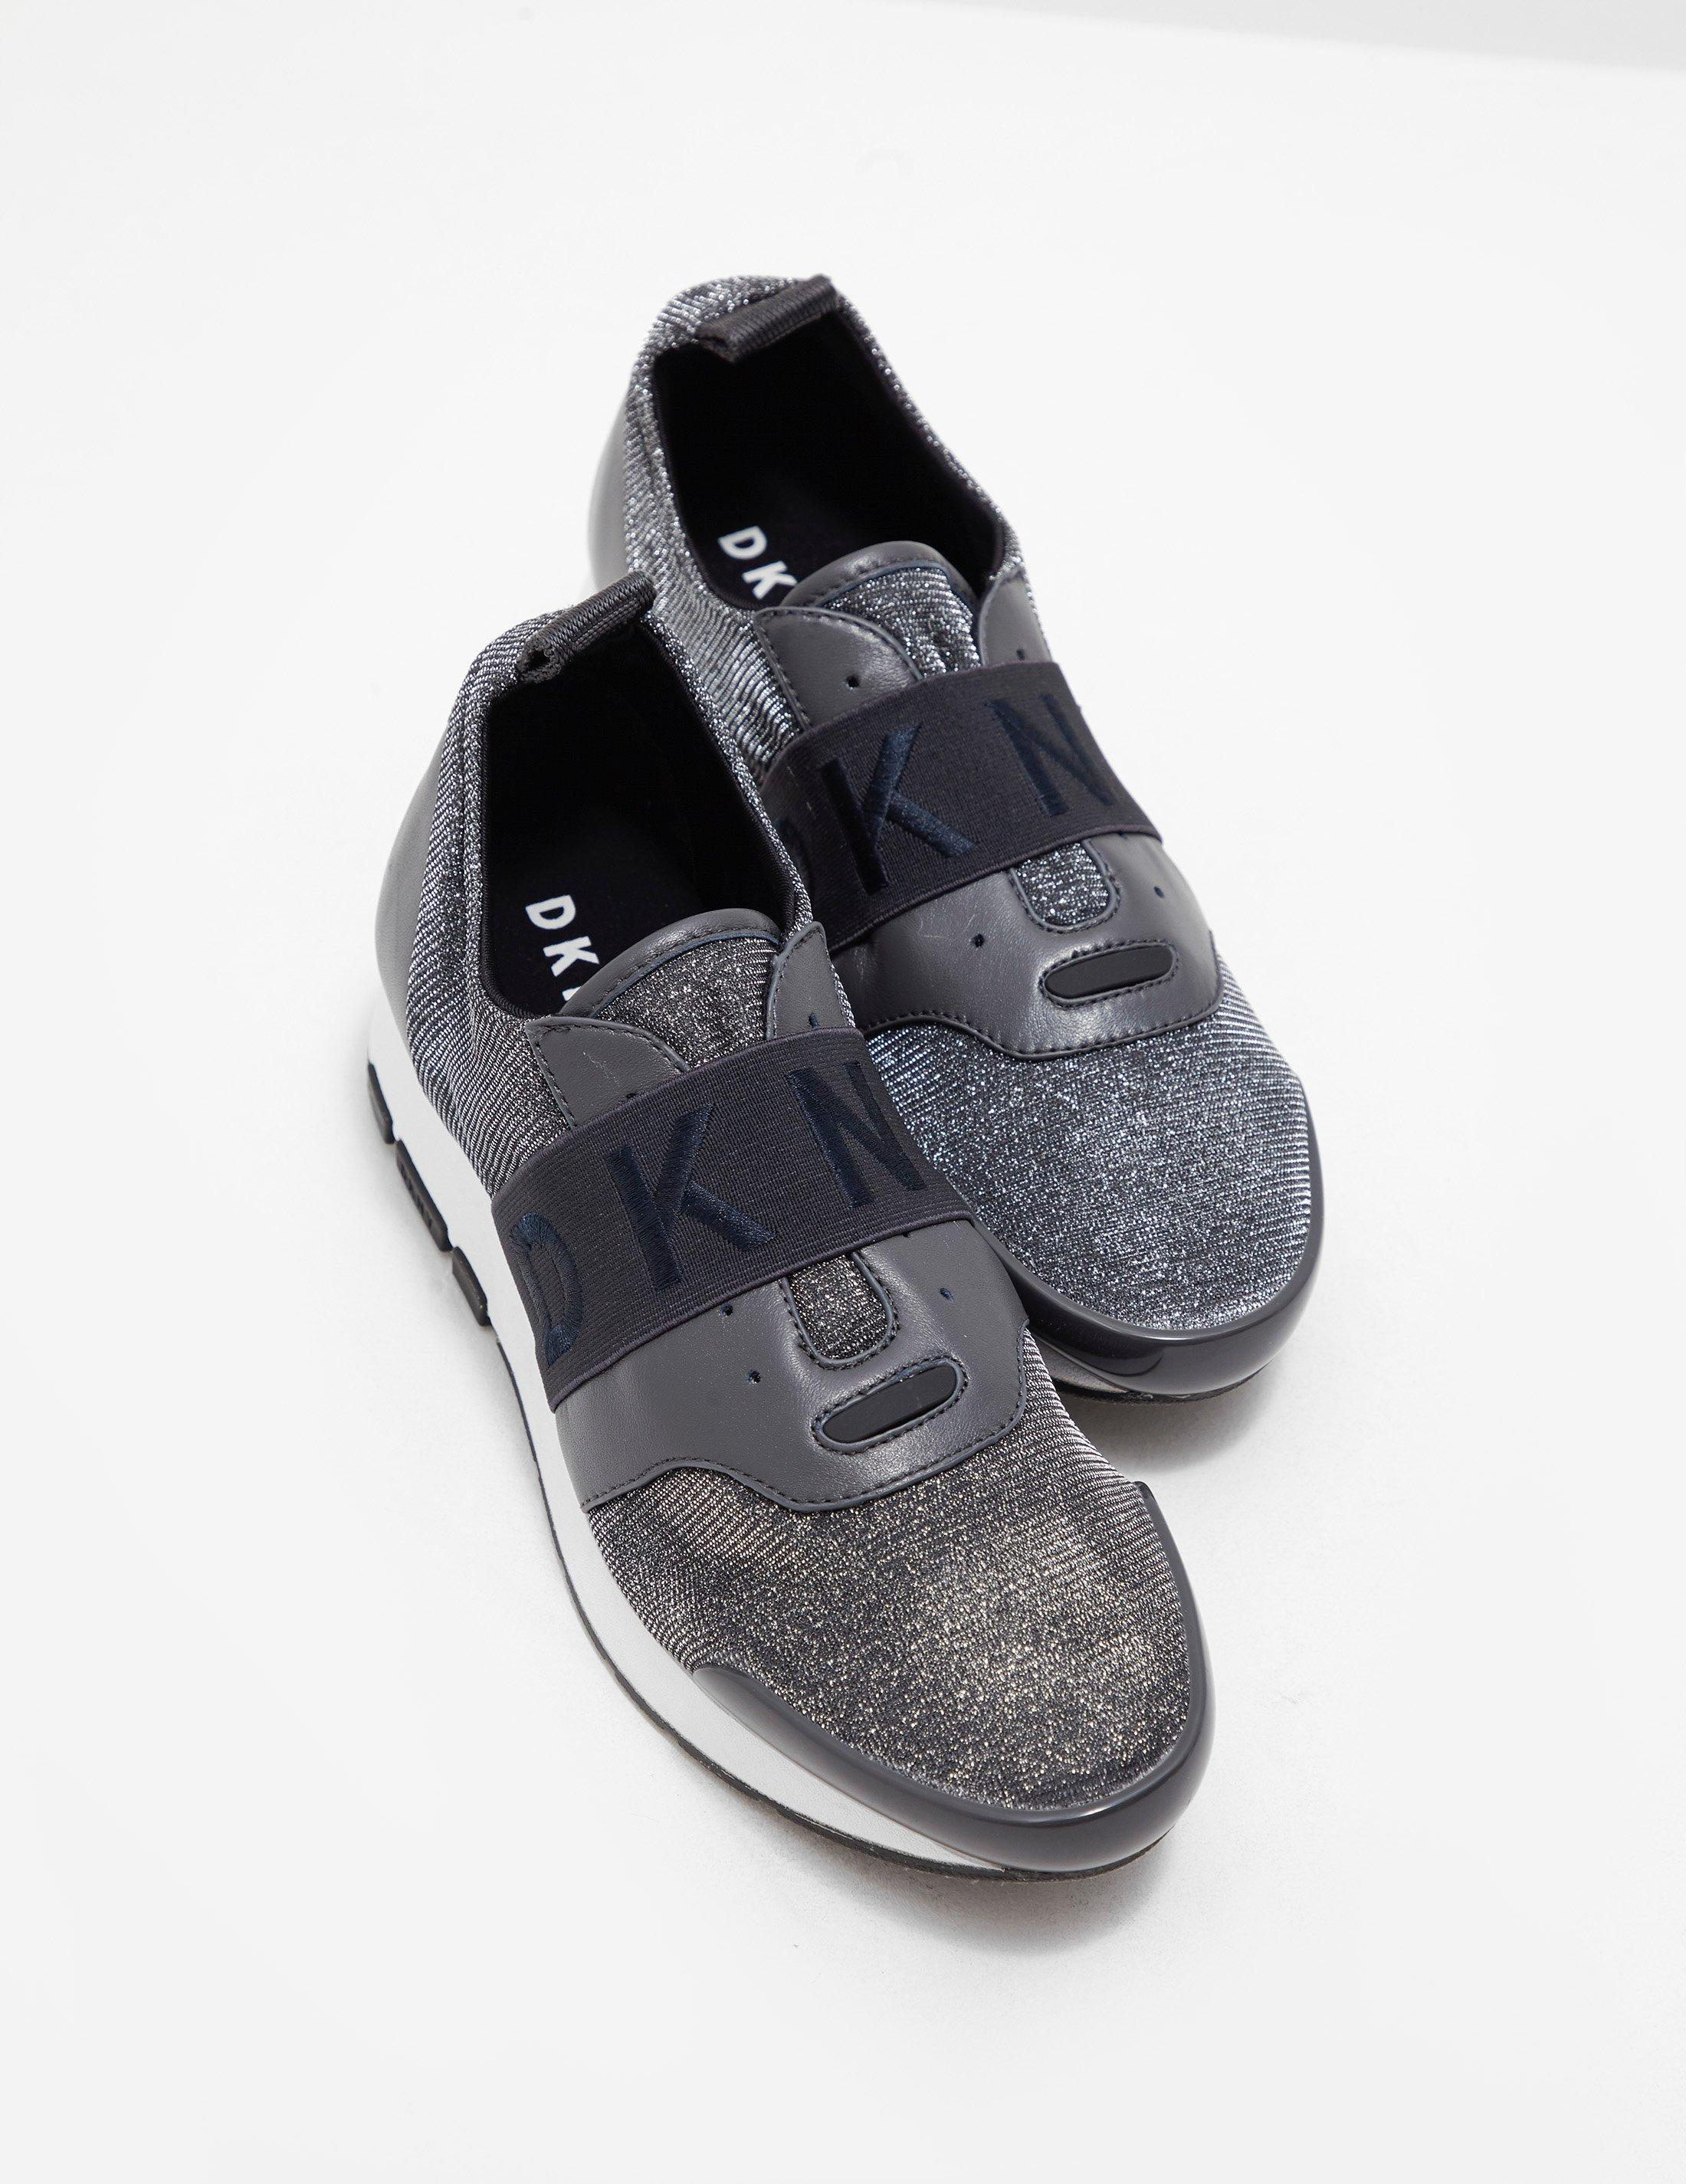 dkny astor trainers, OFF 72%,Buy!